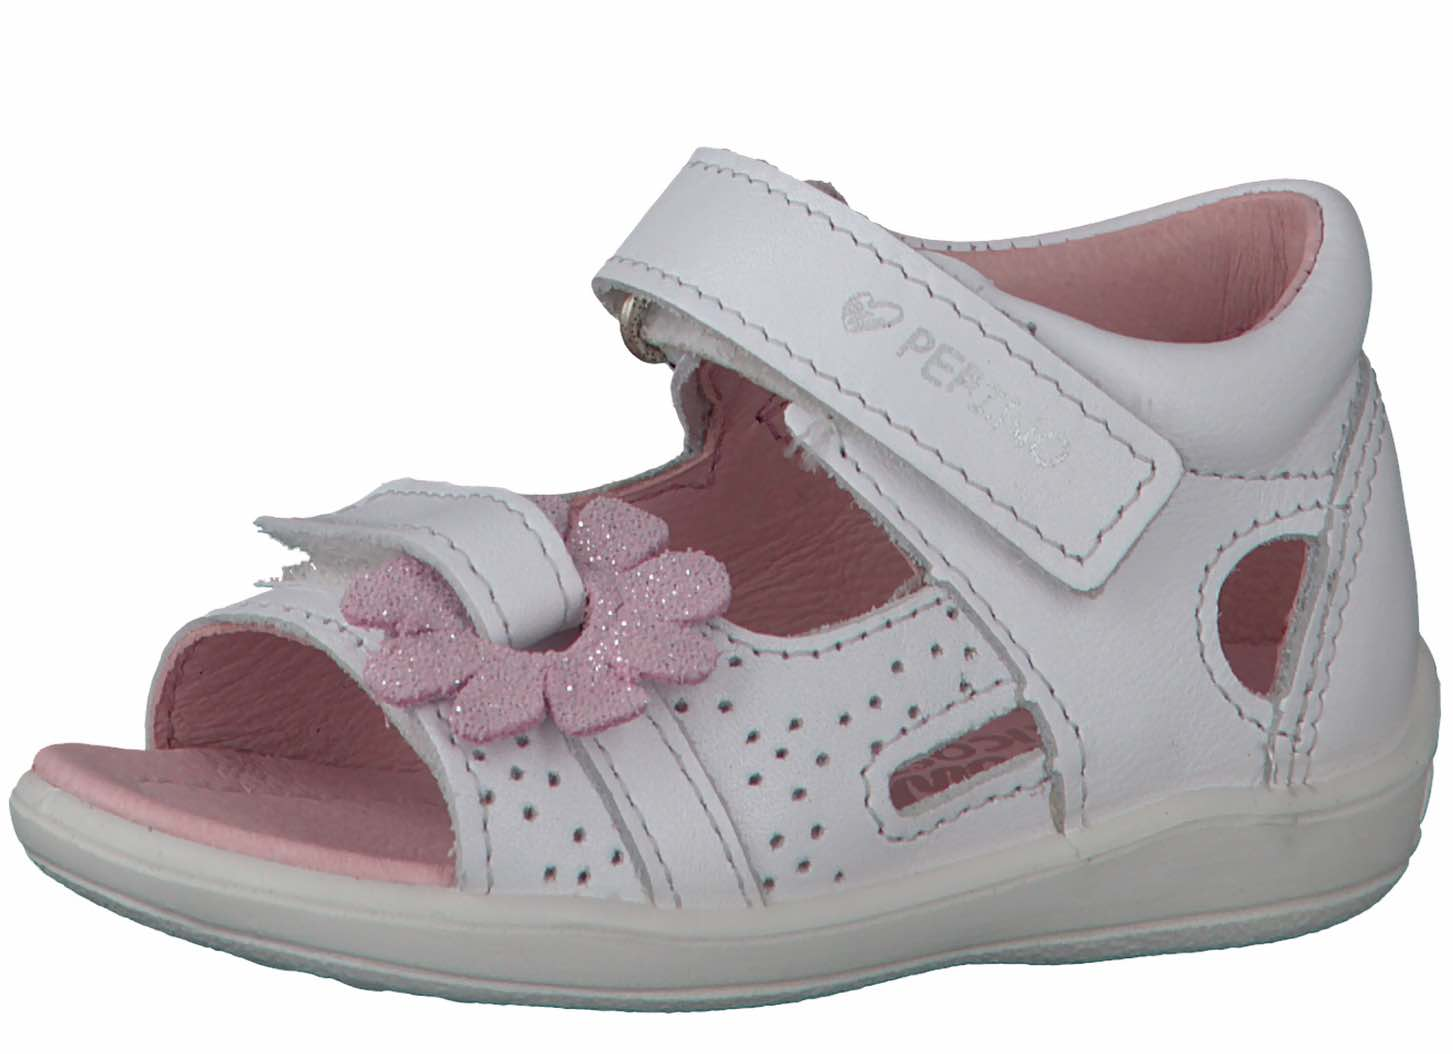 Baby girl white leather sandal with pink flower